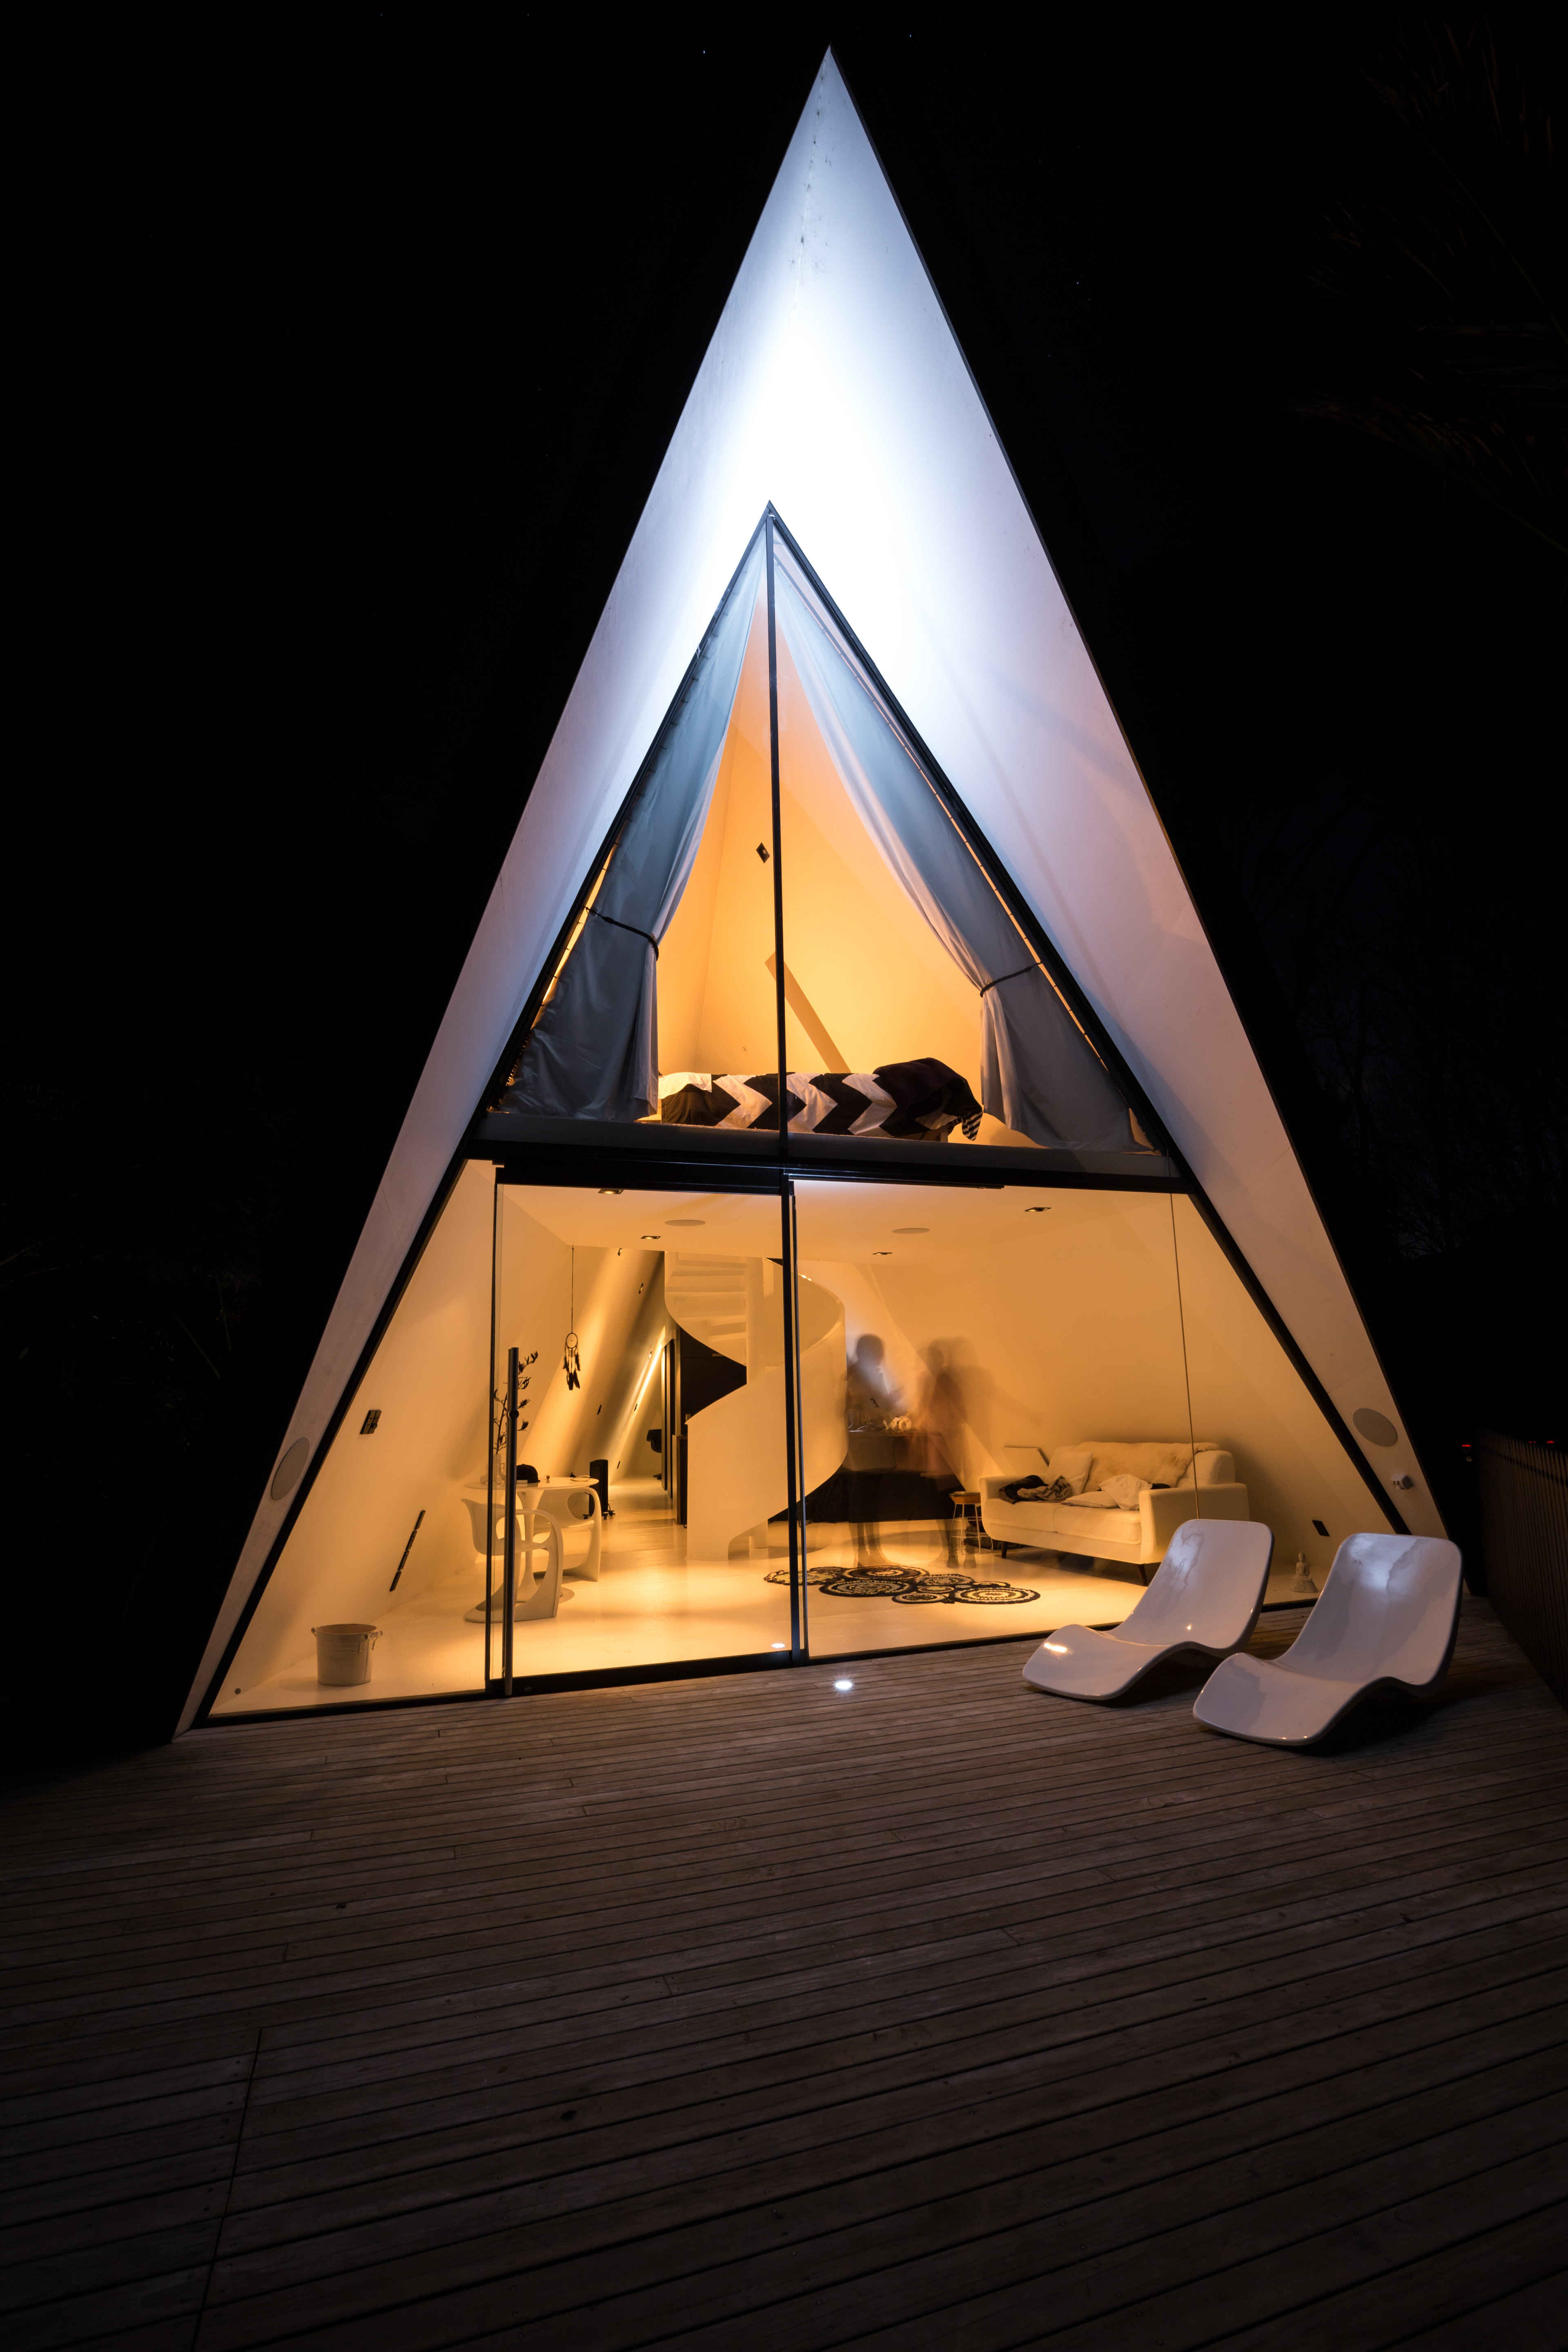 Man Builds Incredible House Shaped Like A Tent 9homes